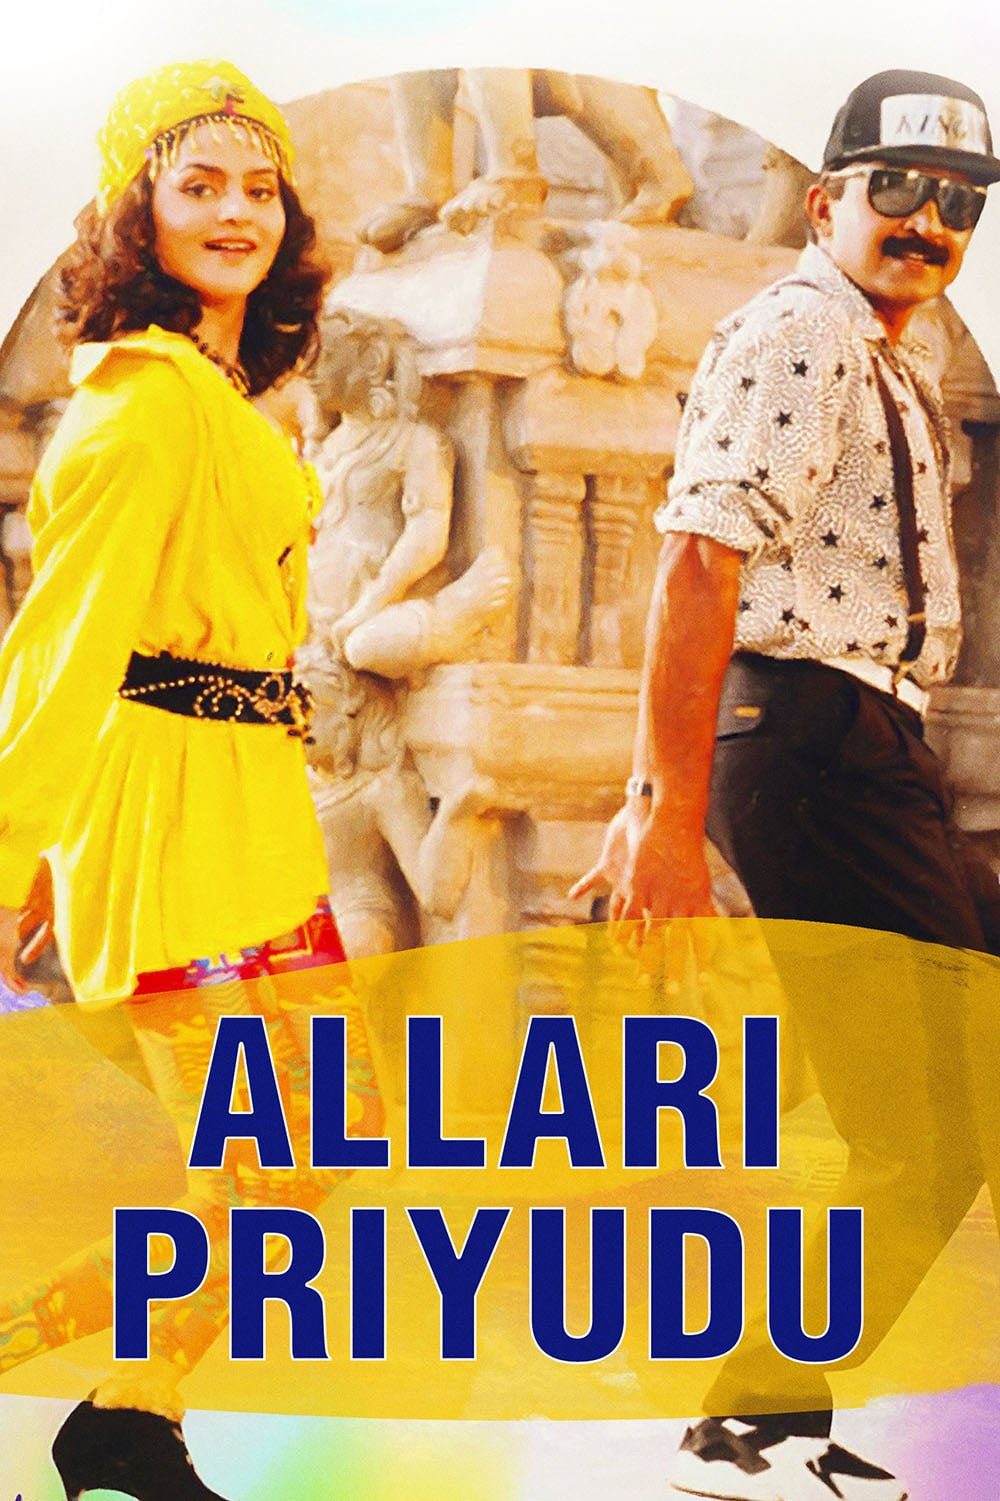 Allari Priyudu Movie Streaming Online Watch on ErosNow, Hungama, Jio Cinema, MX Player, Sun NXT